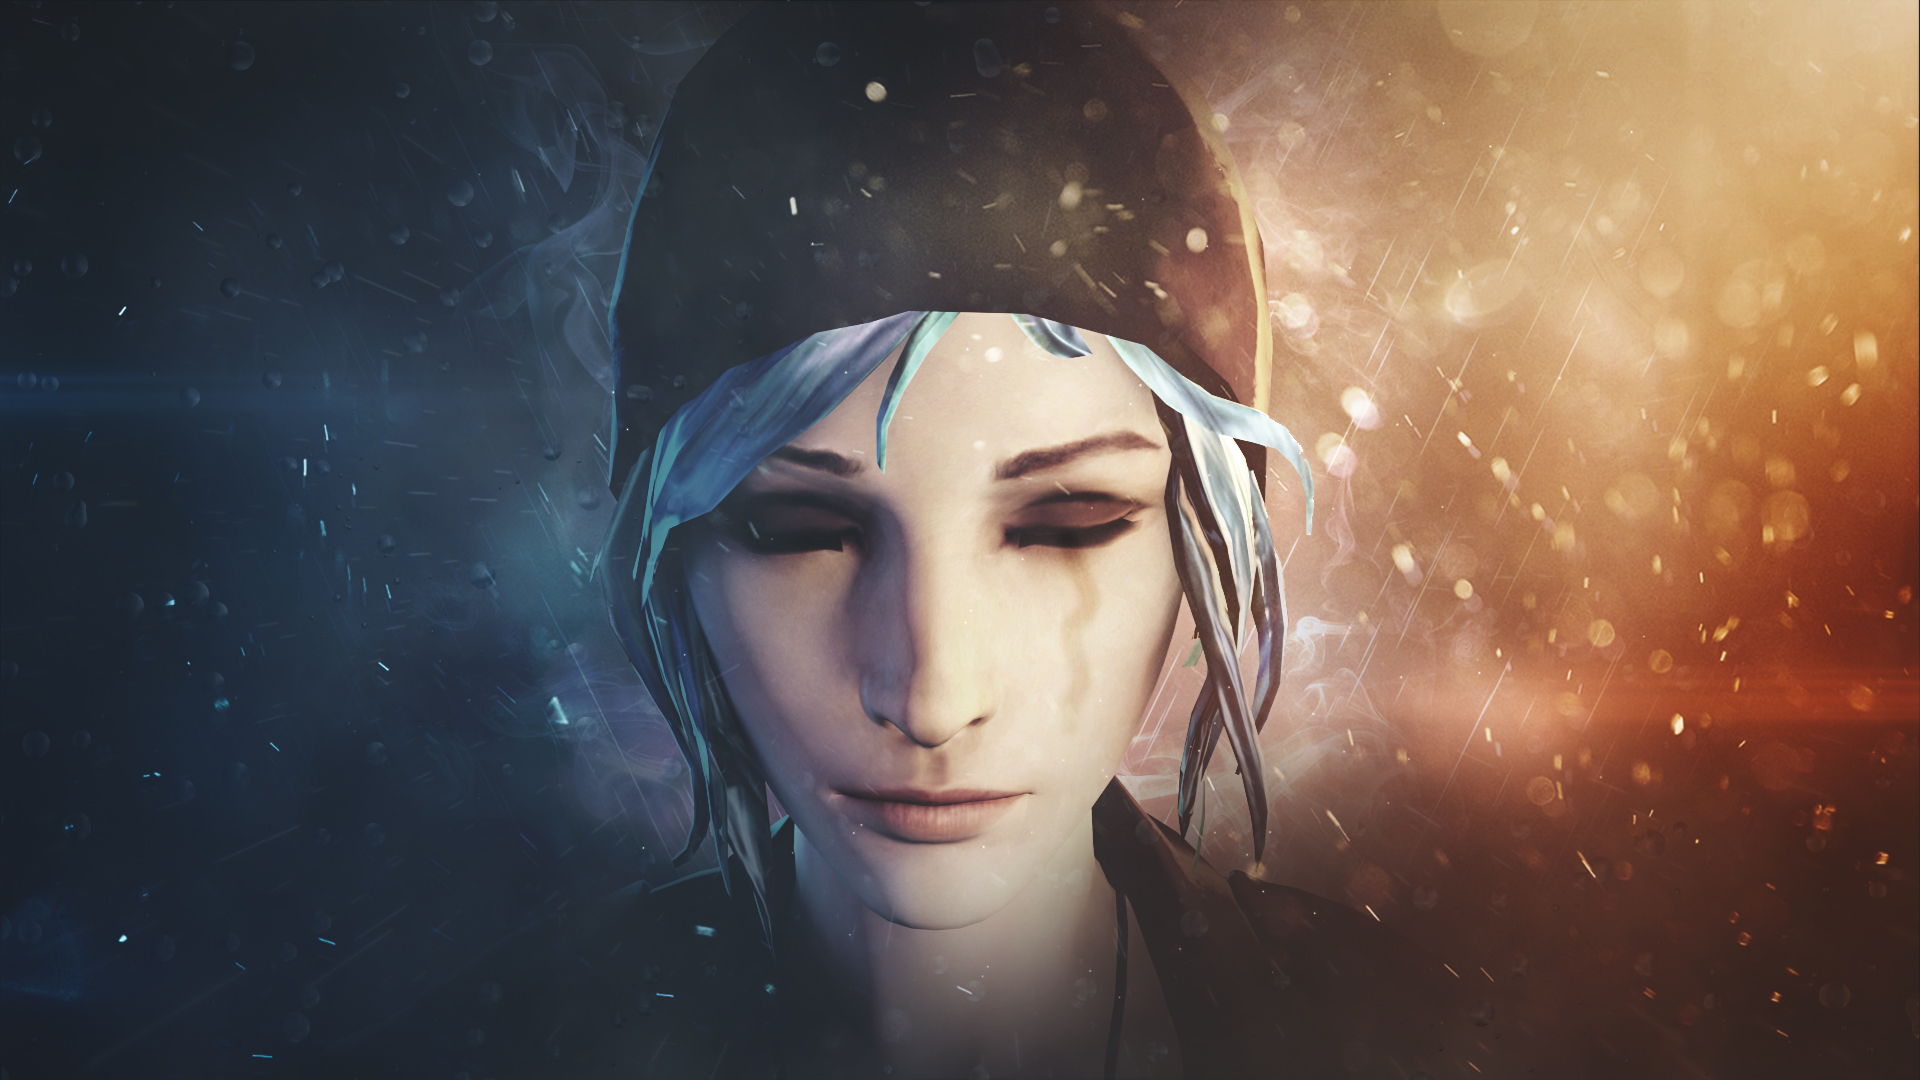 Life Is Strange 2 Wallpaper: Life Is Strange Chloe Wallpaper